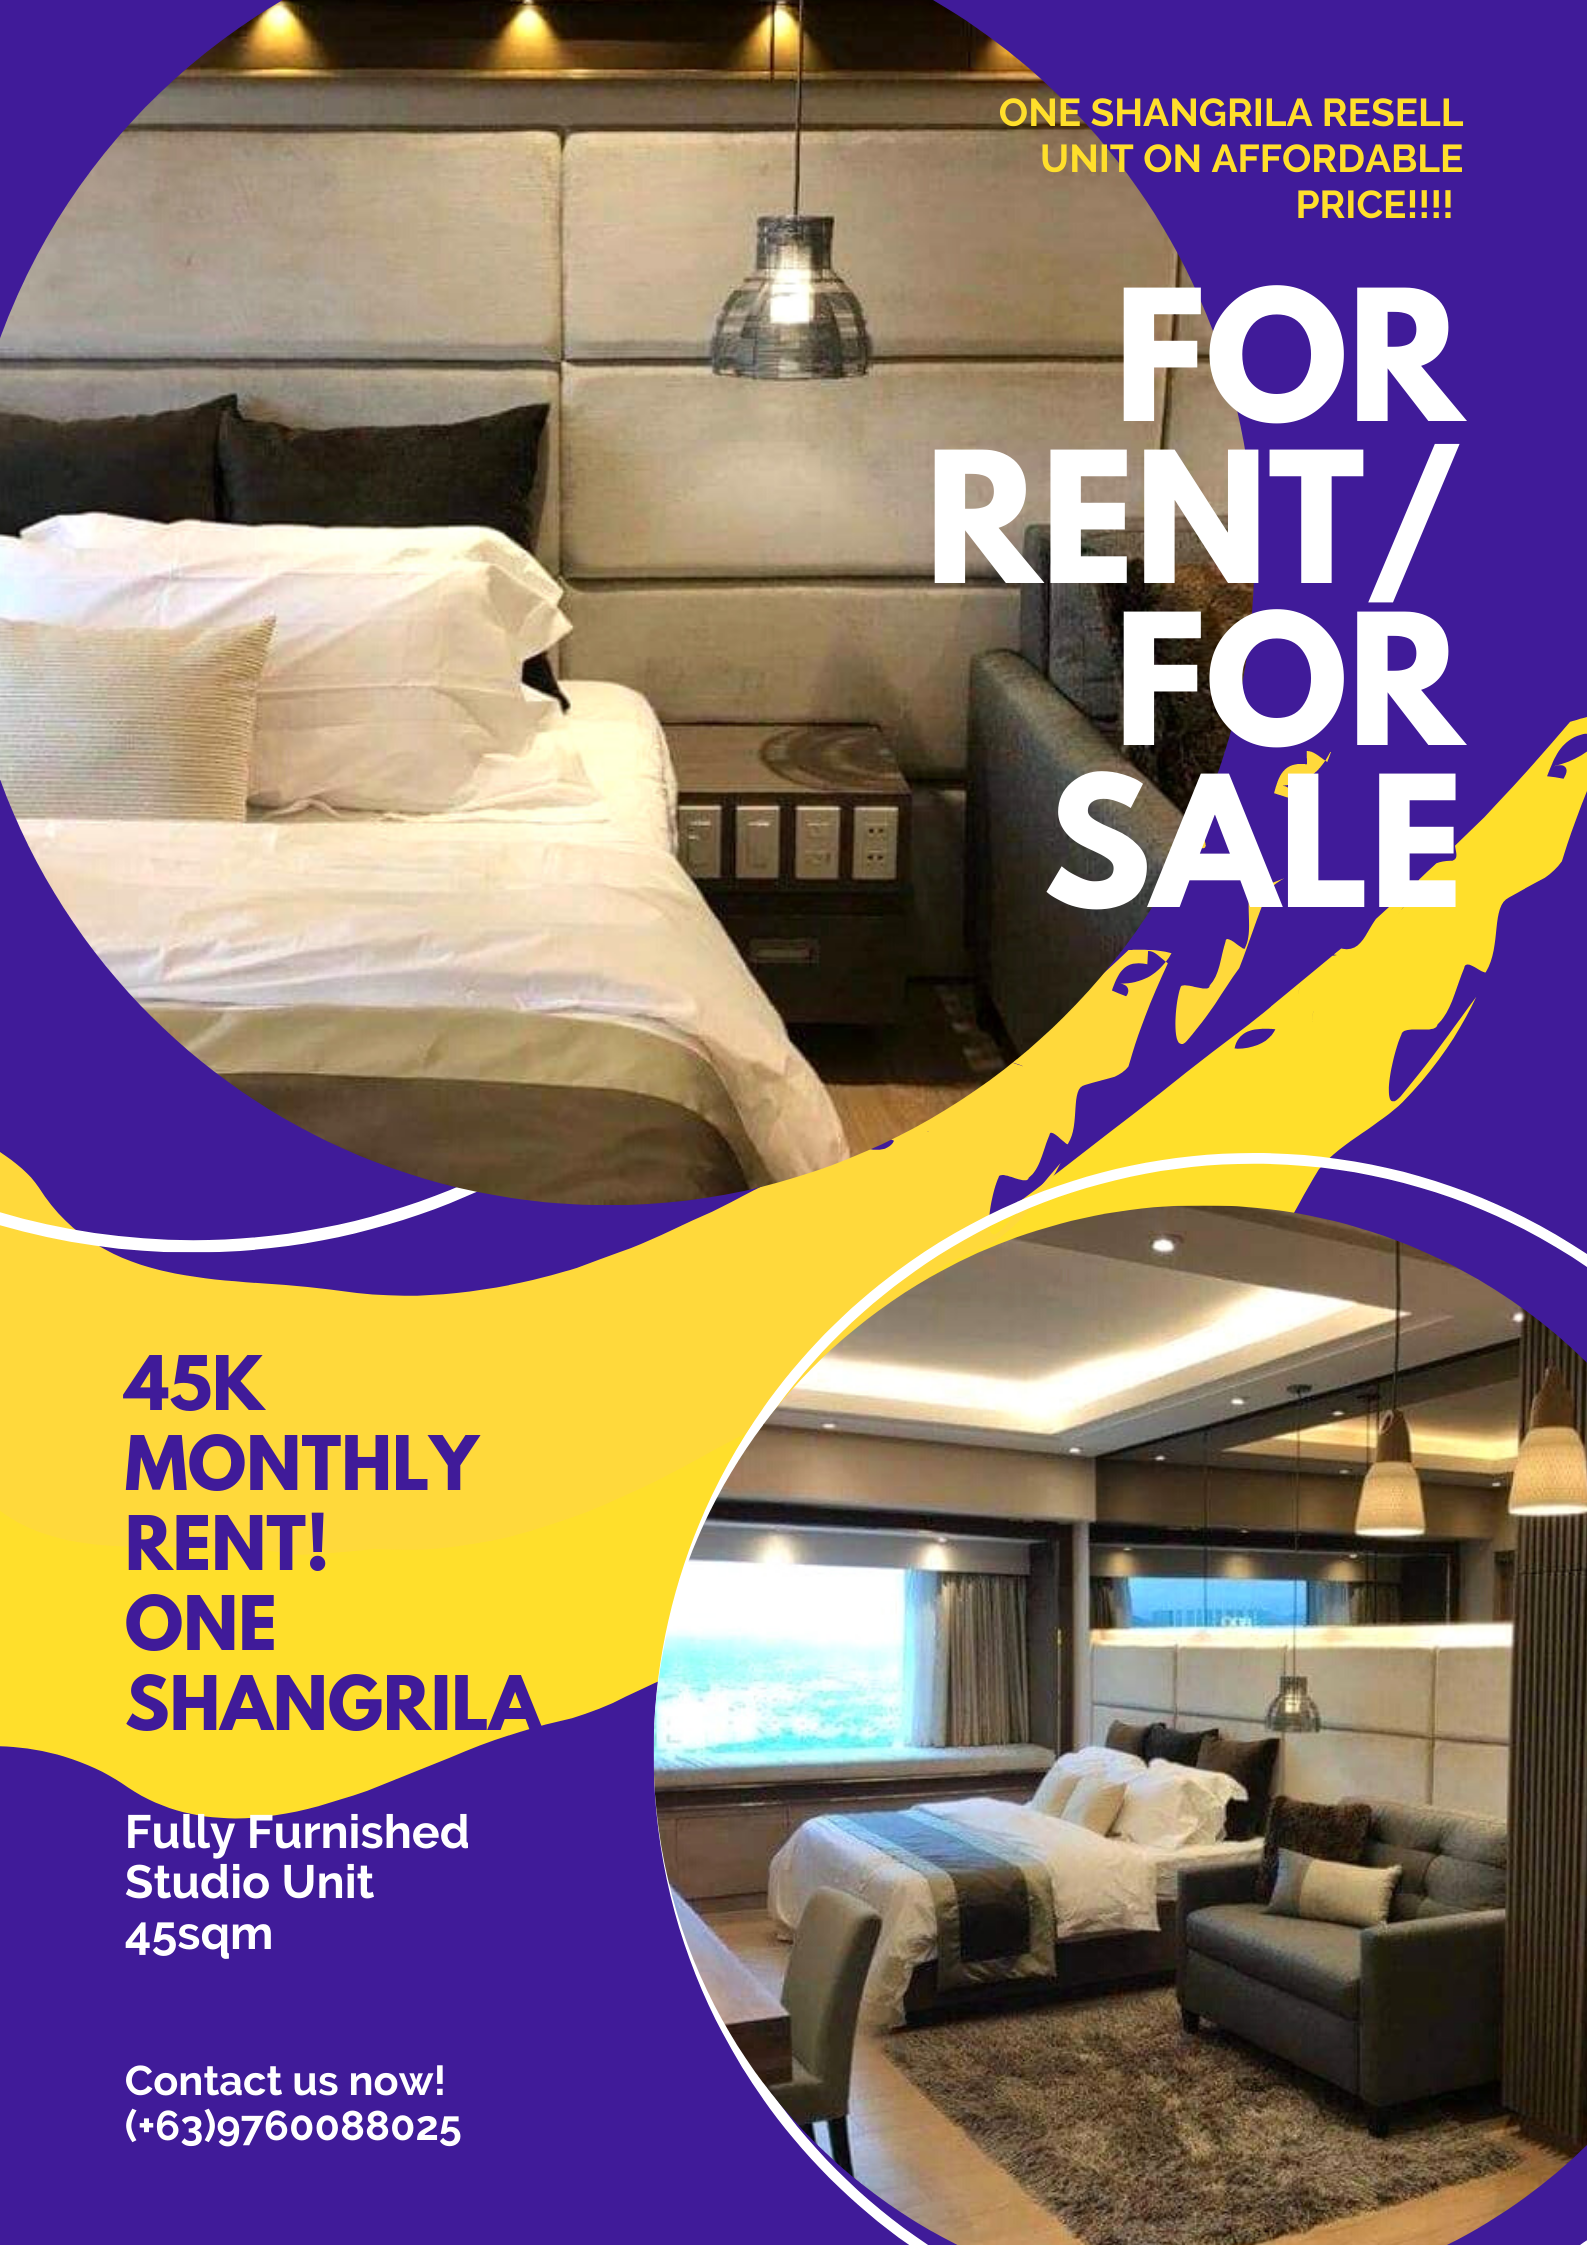 One Shangrila For rent/ For Sale